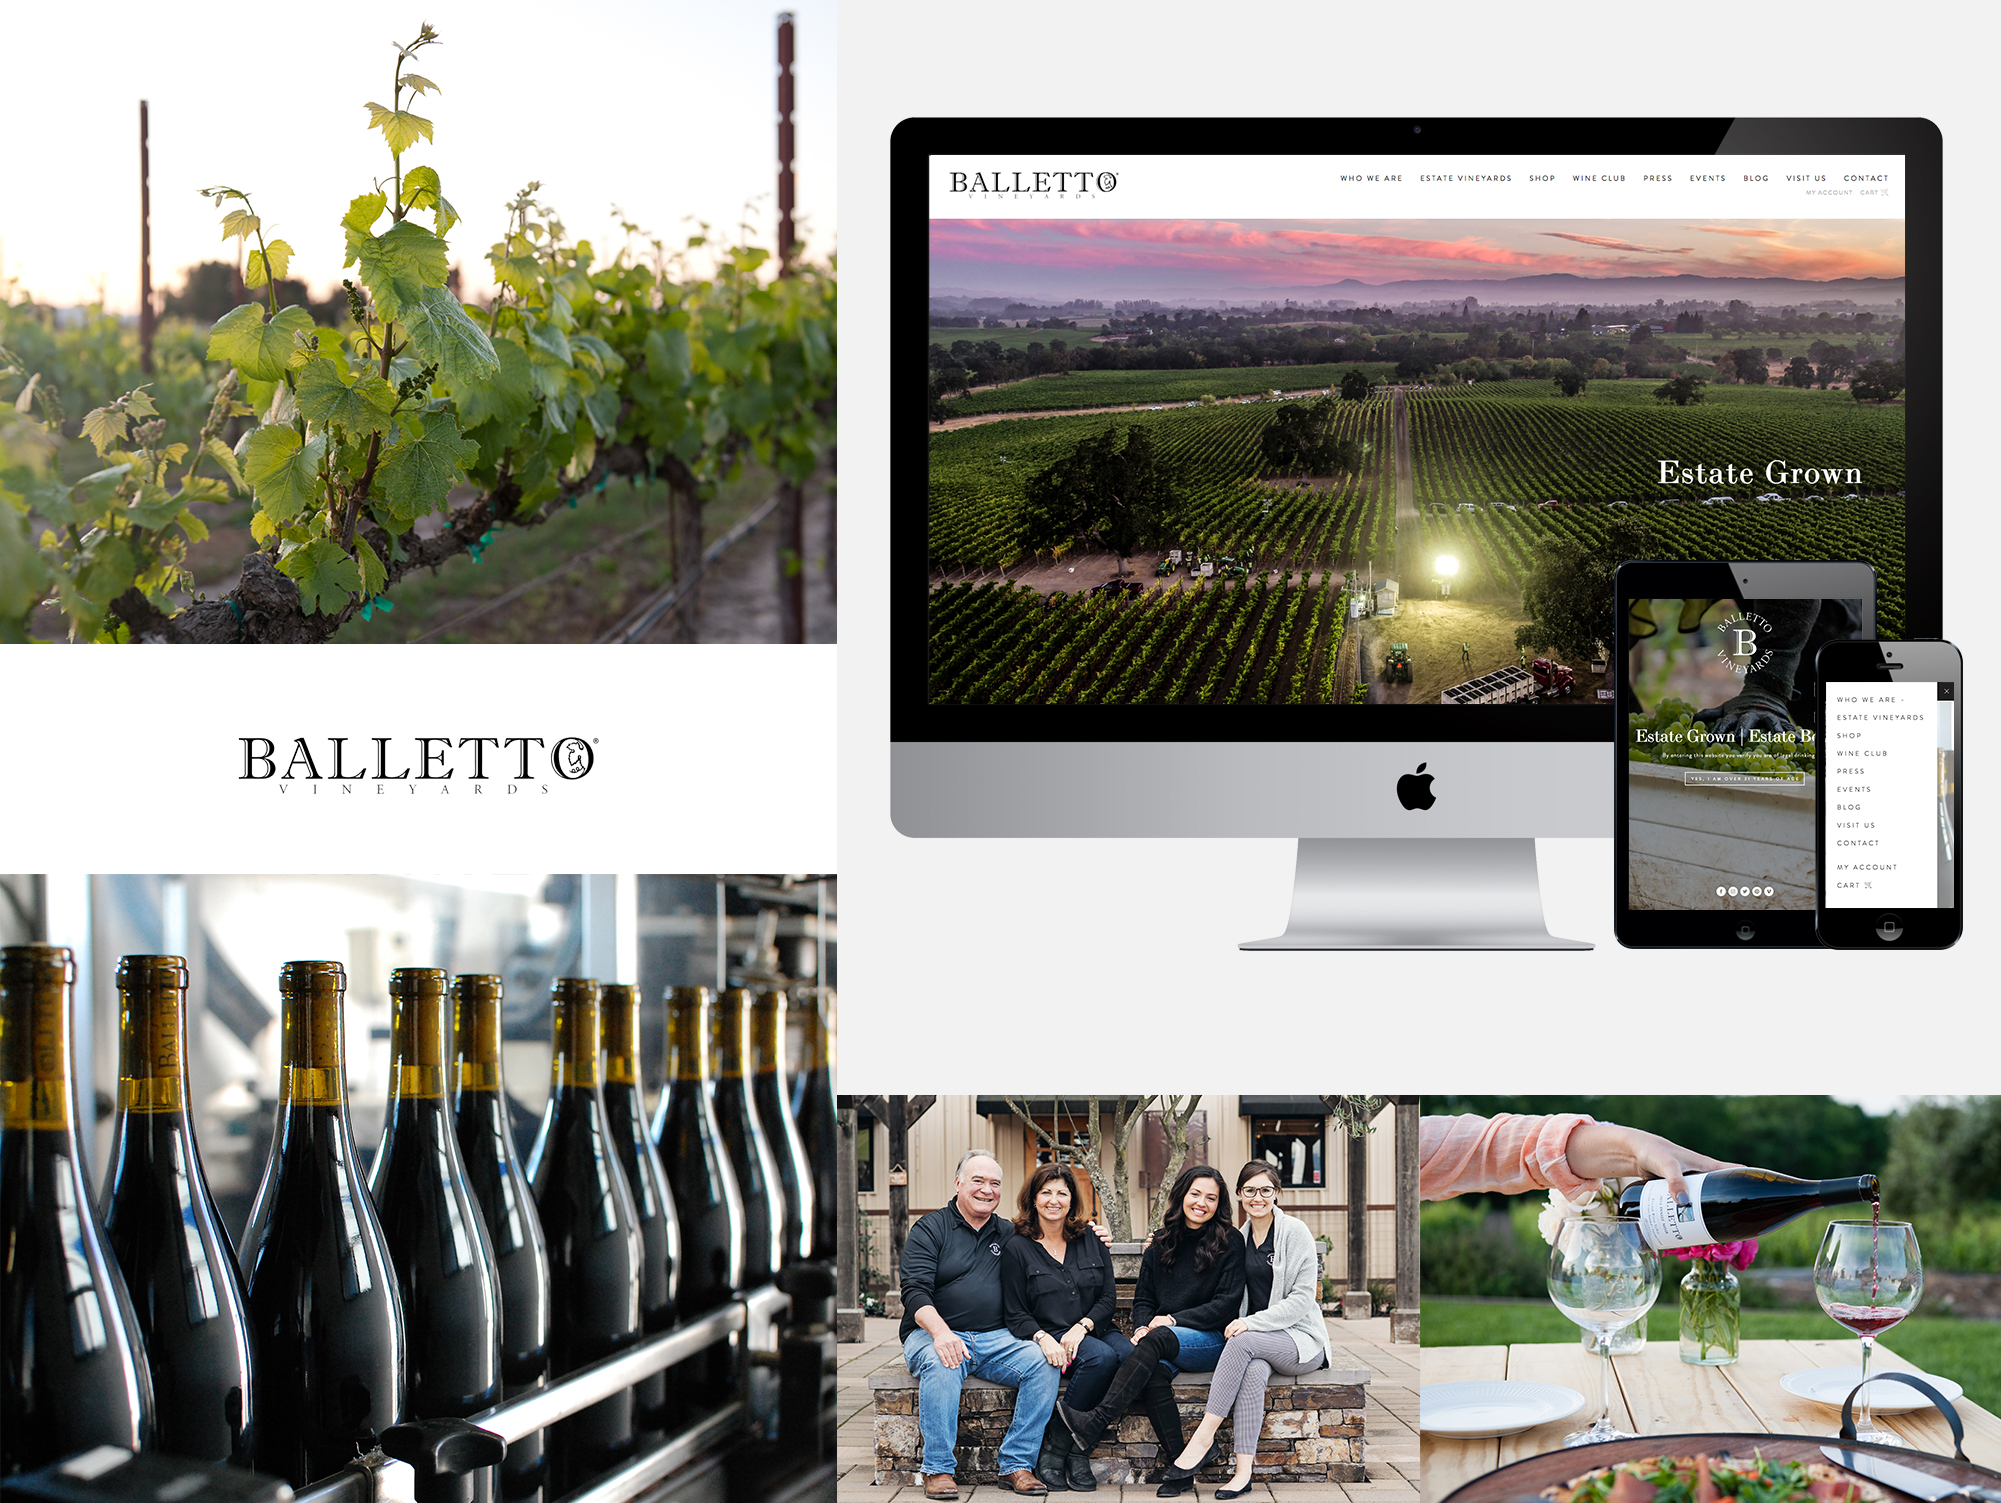 Balletto Vineyards Website Showcase knockout design.jpg